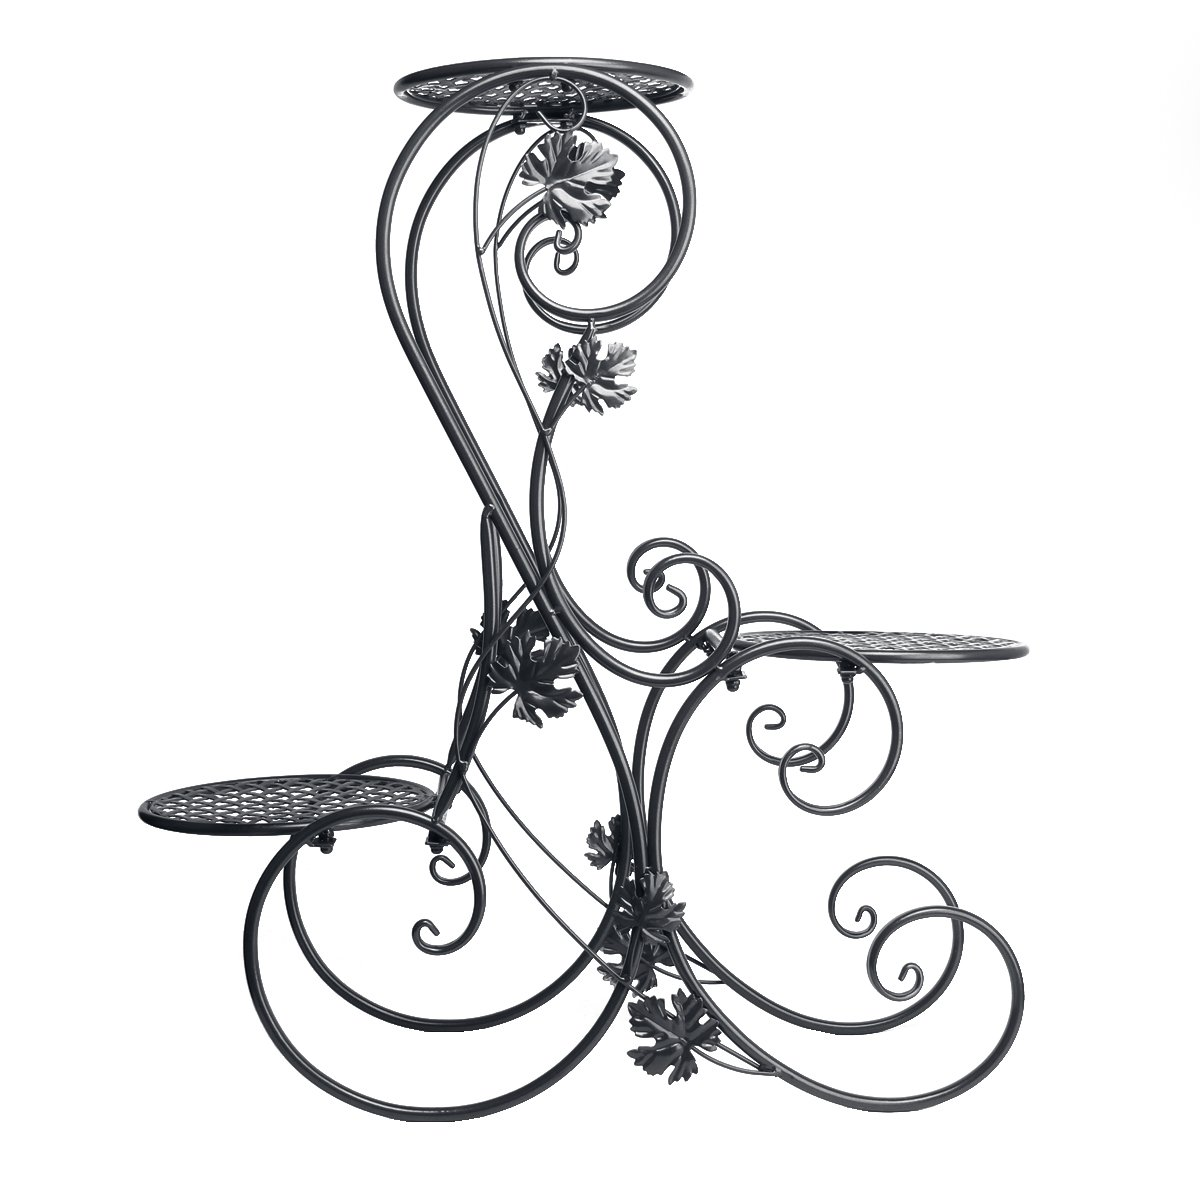 Dazone® 3-Tiered Scroll Decorative Metal Garden Patio Standing Plant Flower Pot Rack Display Shelf Holds 3-Flower Pot (Black) by DAZONE (Image #1)